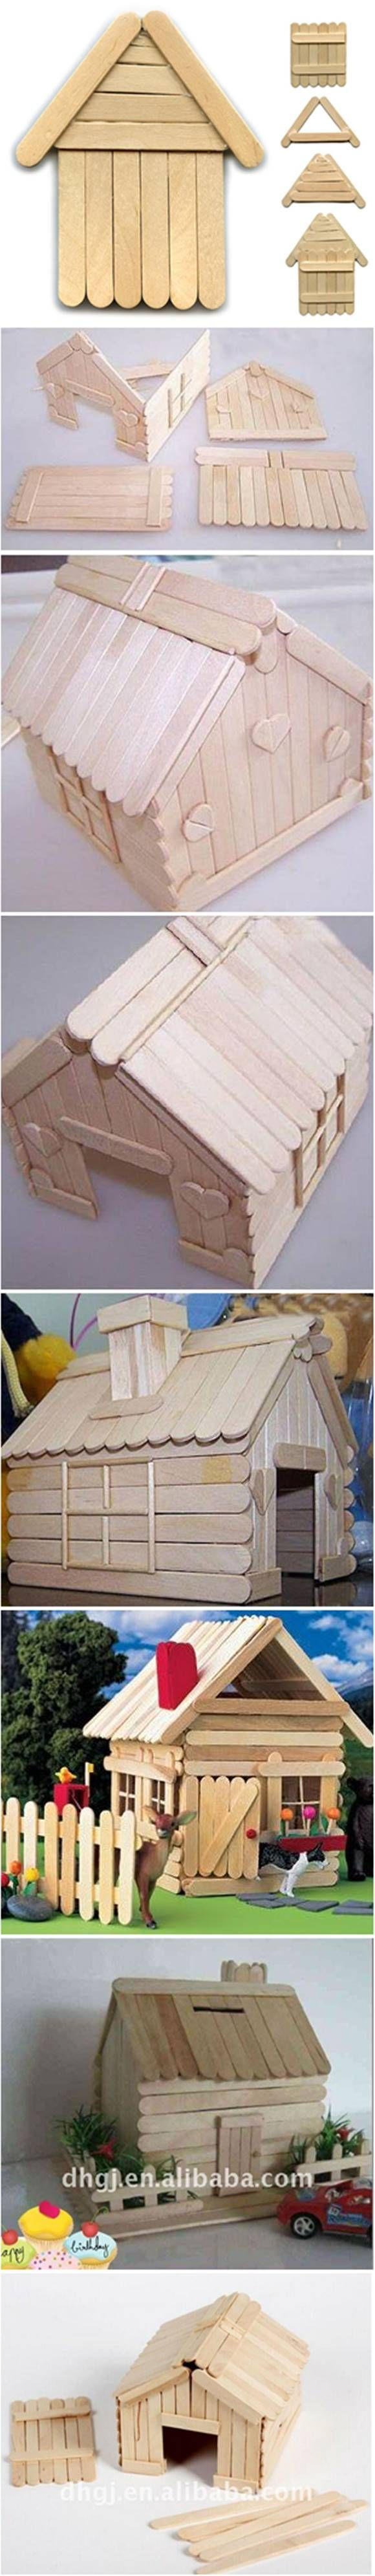 How to DIY Popsicle Stick House #craft